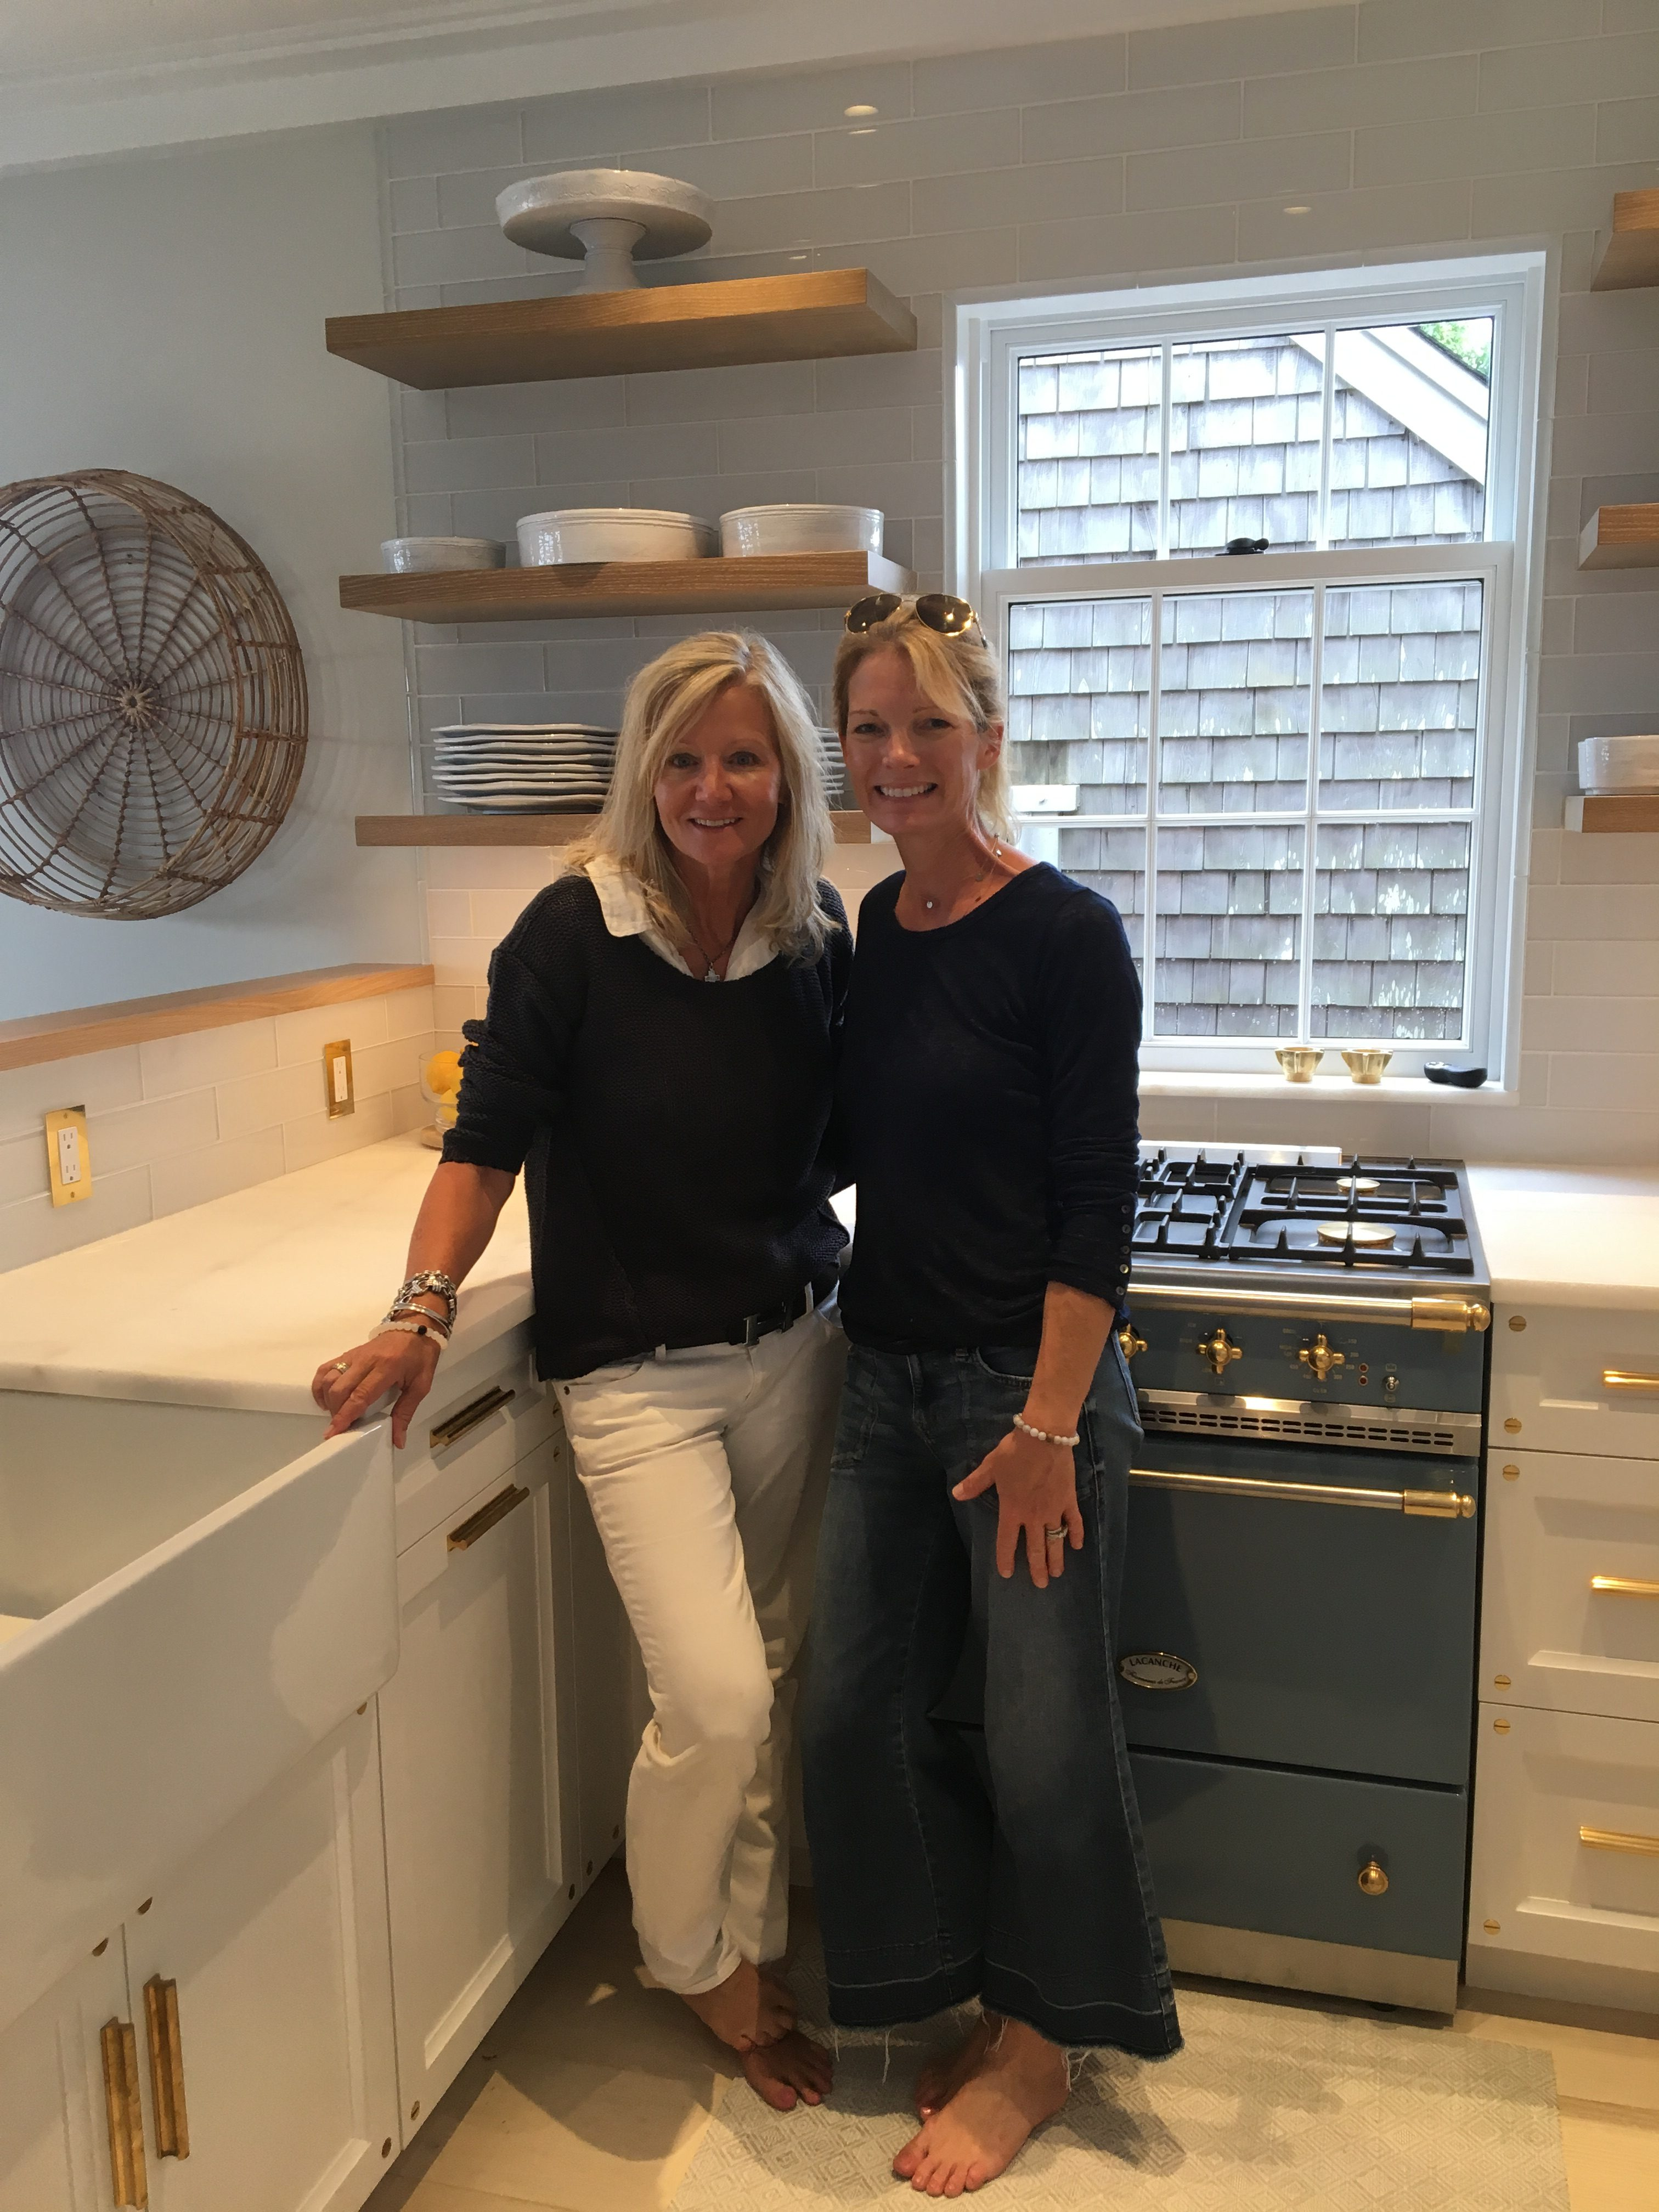 Elizabeth raith interior designer venturemom - Interior design jobs philadelphia ...